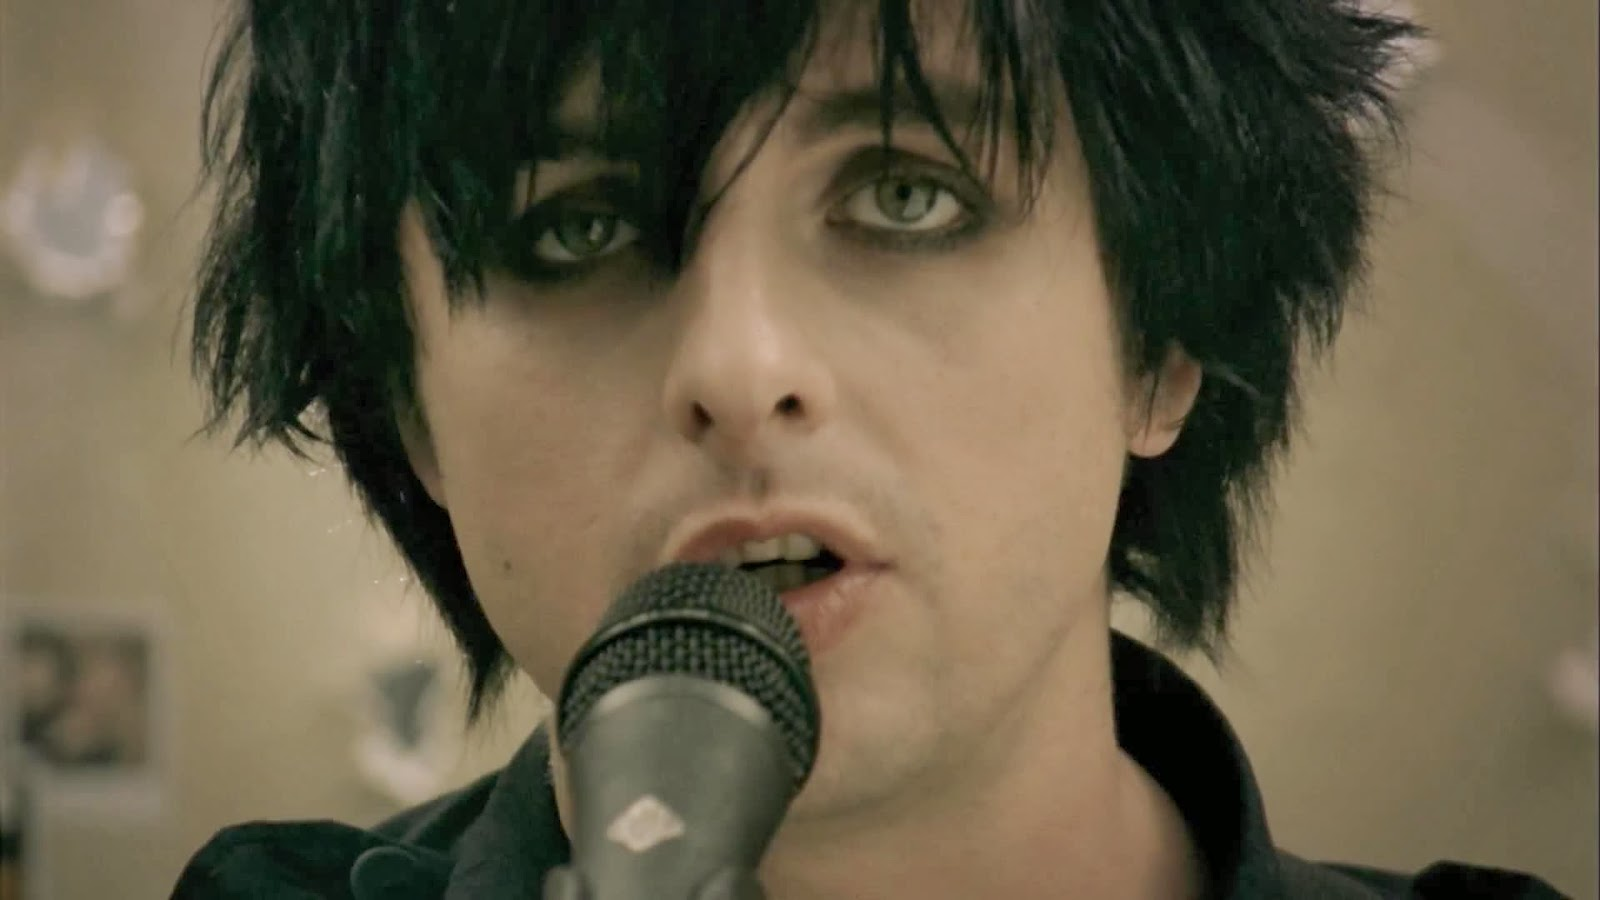 Green Day - 21 Guns [Official Music Video] - Wallpapers ...